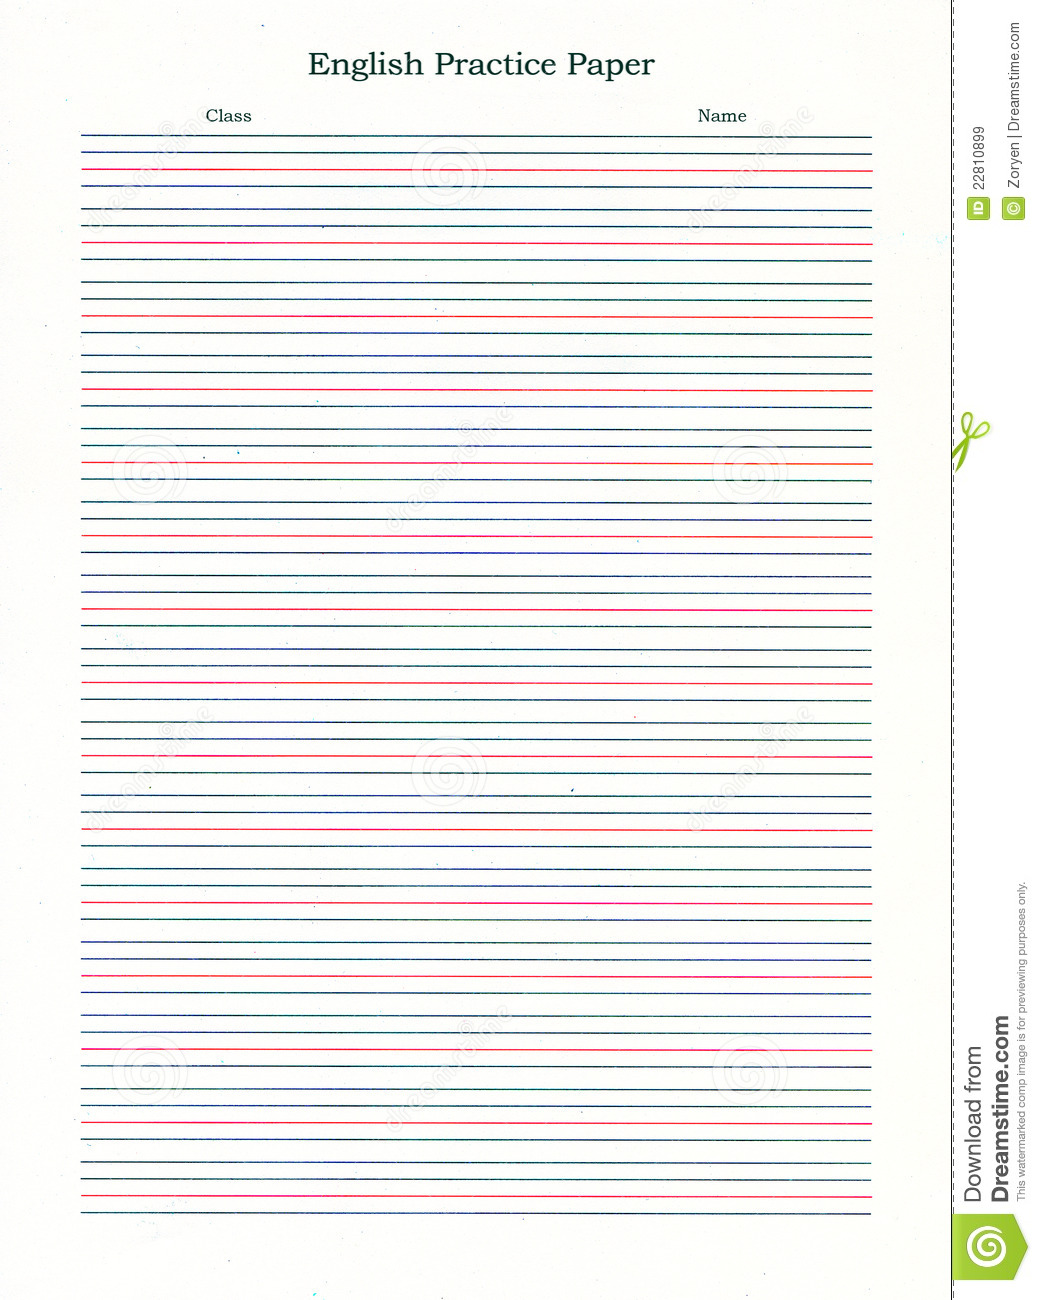 Ruled Writing Paper Stock Image Image Of Guide Ruled Ruled Writing Paper